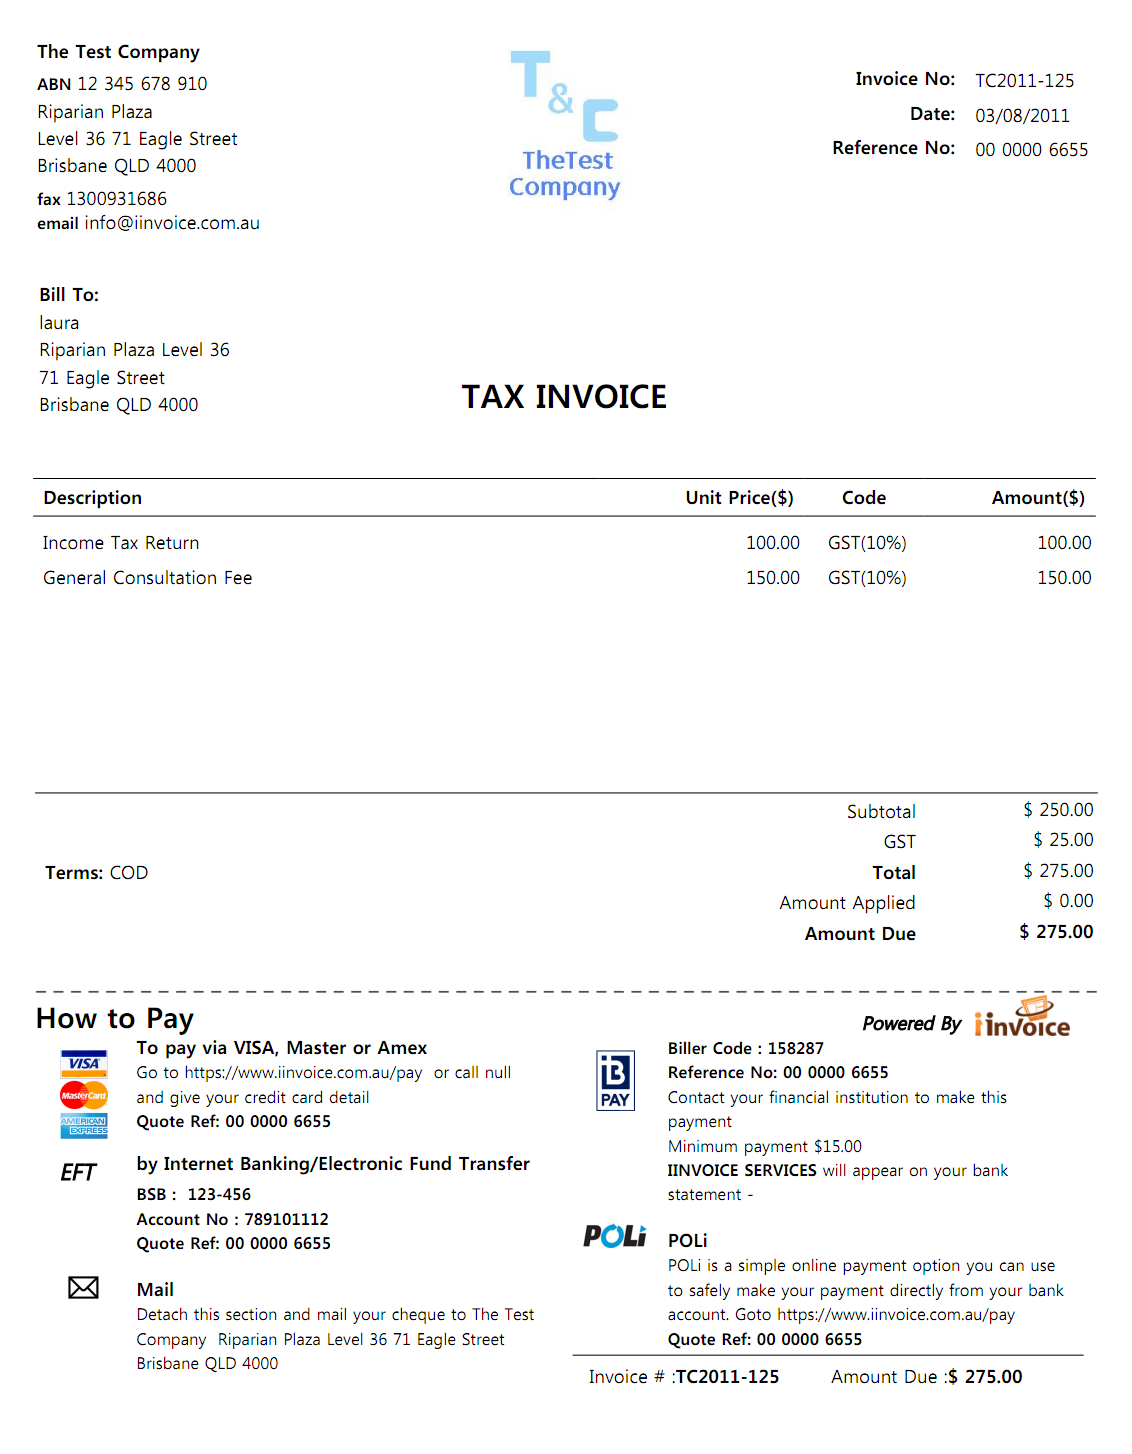 Proforma Invoice Meaning Word Download Invoice Template Qld  Rabitahnet Creative Invoices Excel with Free Online Invoice Creator Template Iinvoicethe Smart Way Of Invoicing And Payment Invoice Examples Refund No Receipt Pdf